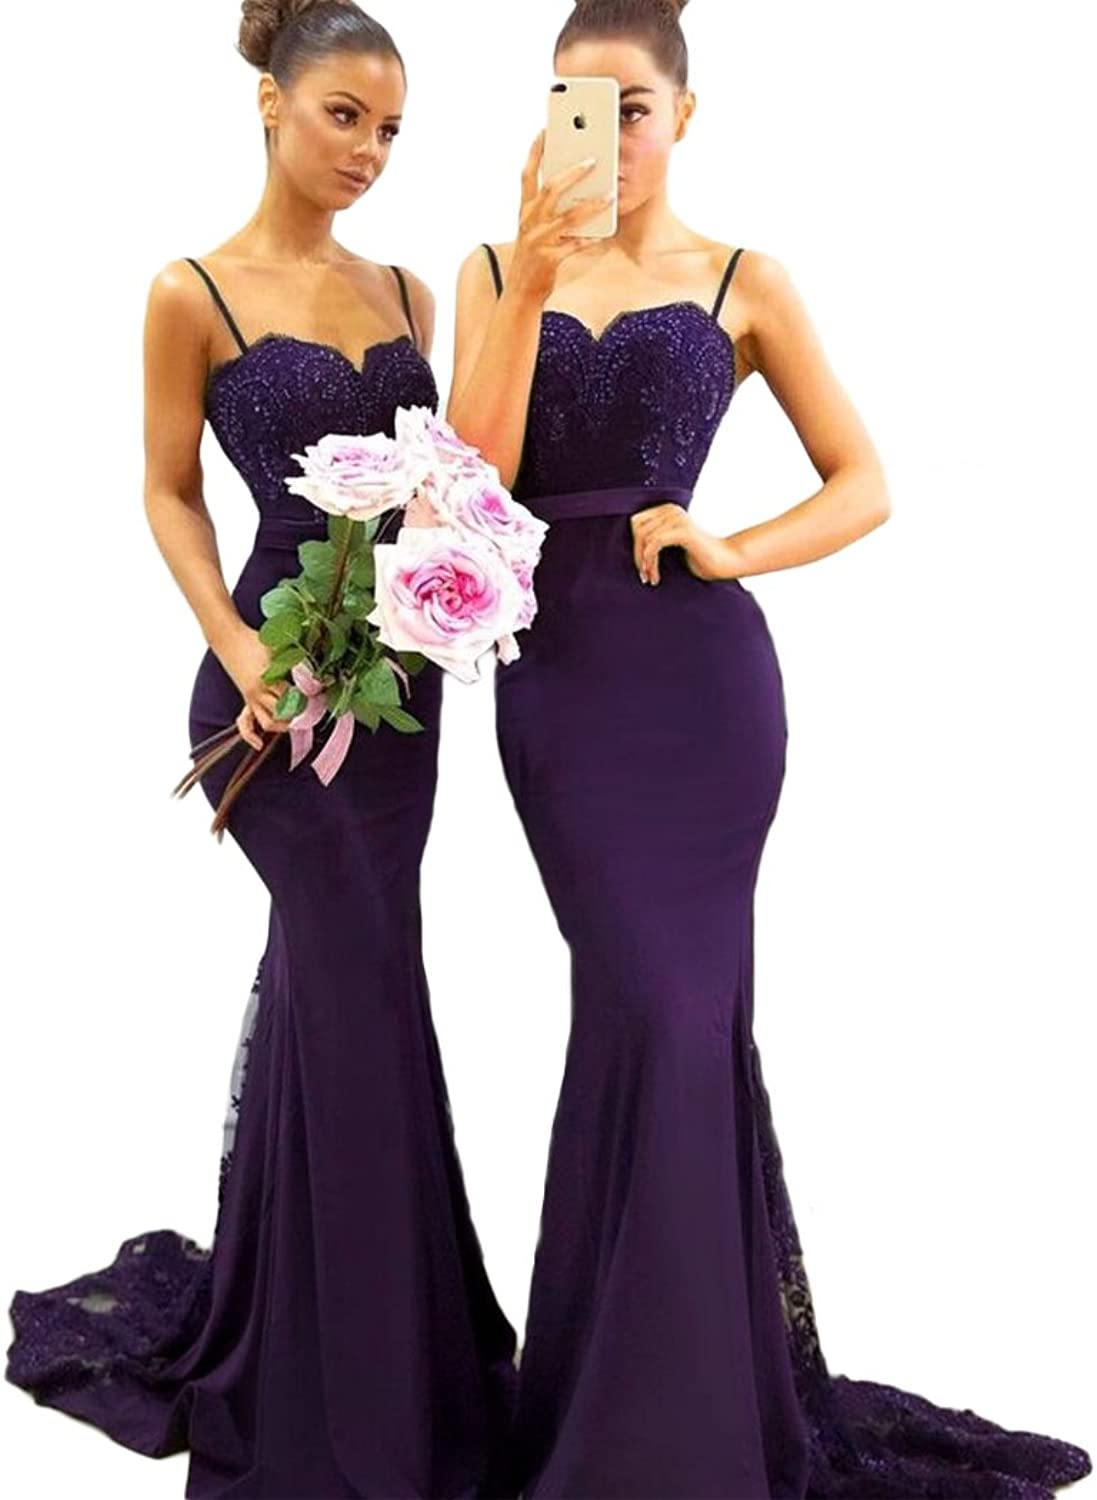 QiJunGe Sexy Spaghetti Straps Mermaid Bridesmaid Dresses Formal Prom Party Gowns